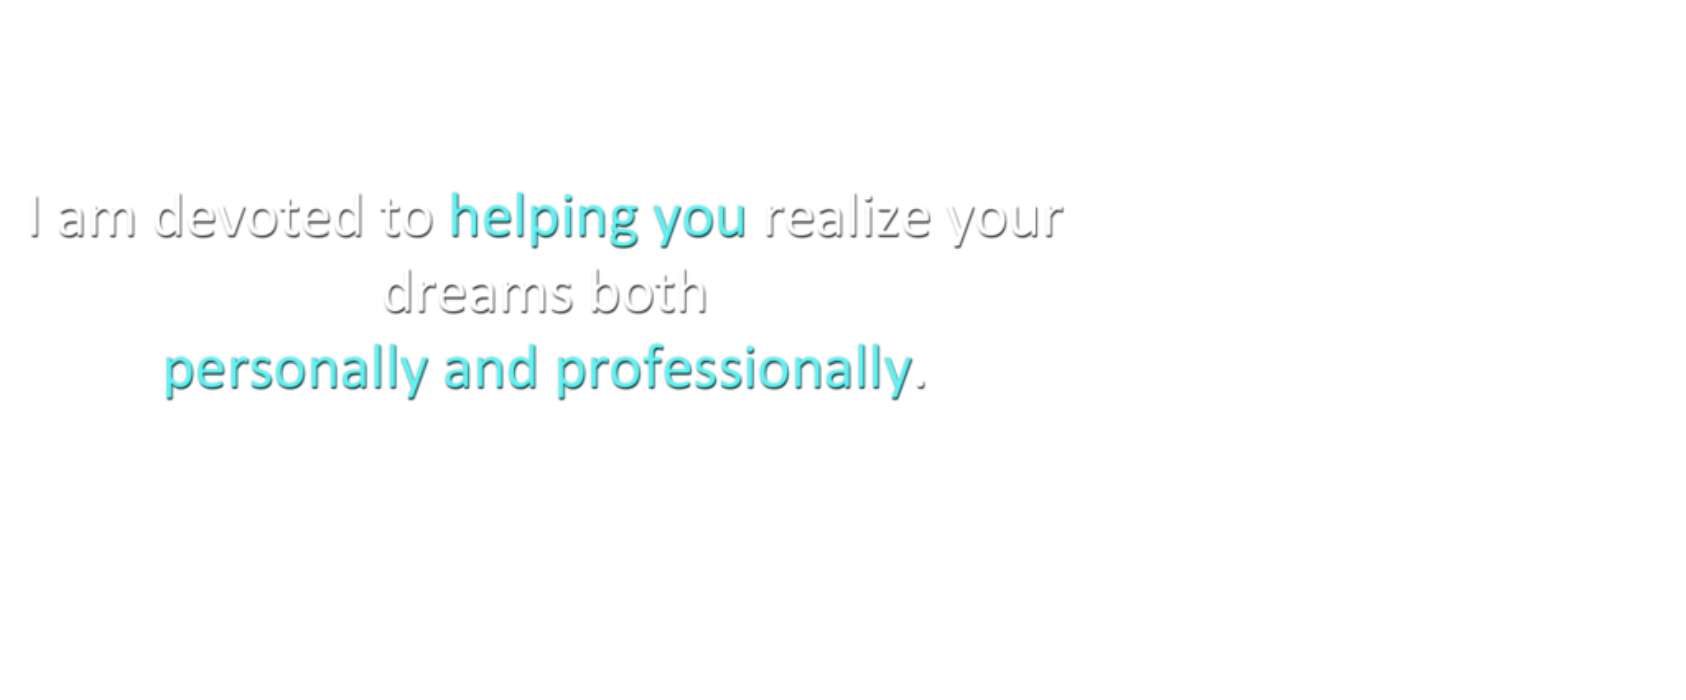 helping you personally and professionally